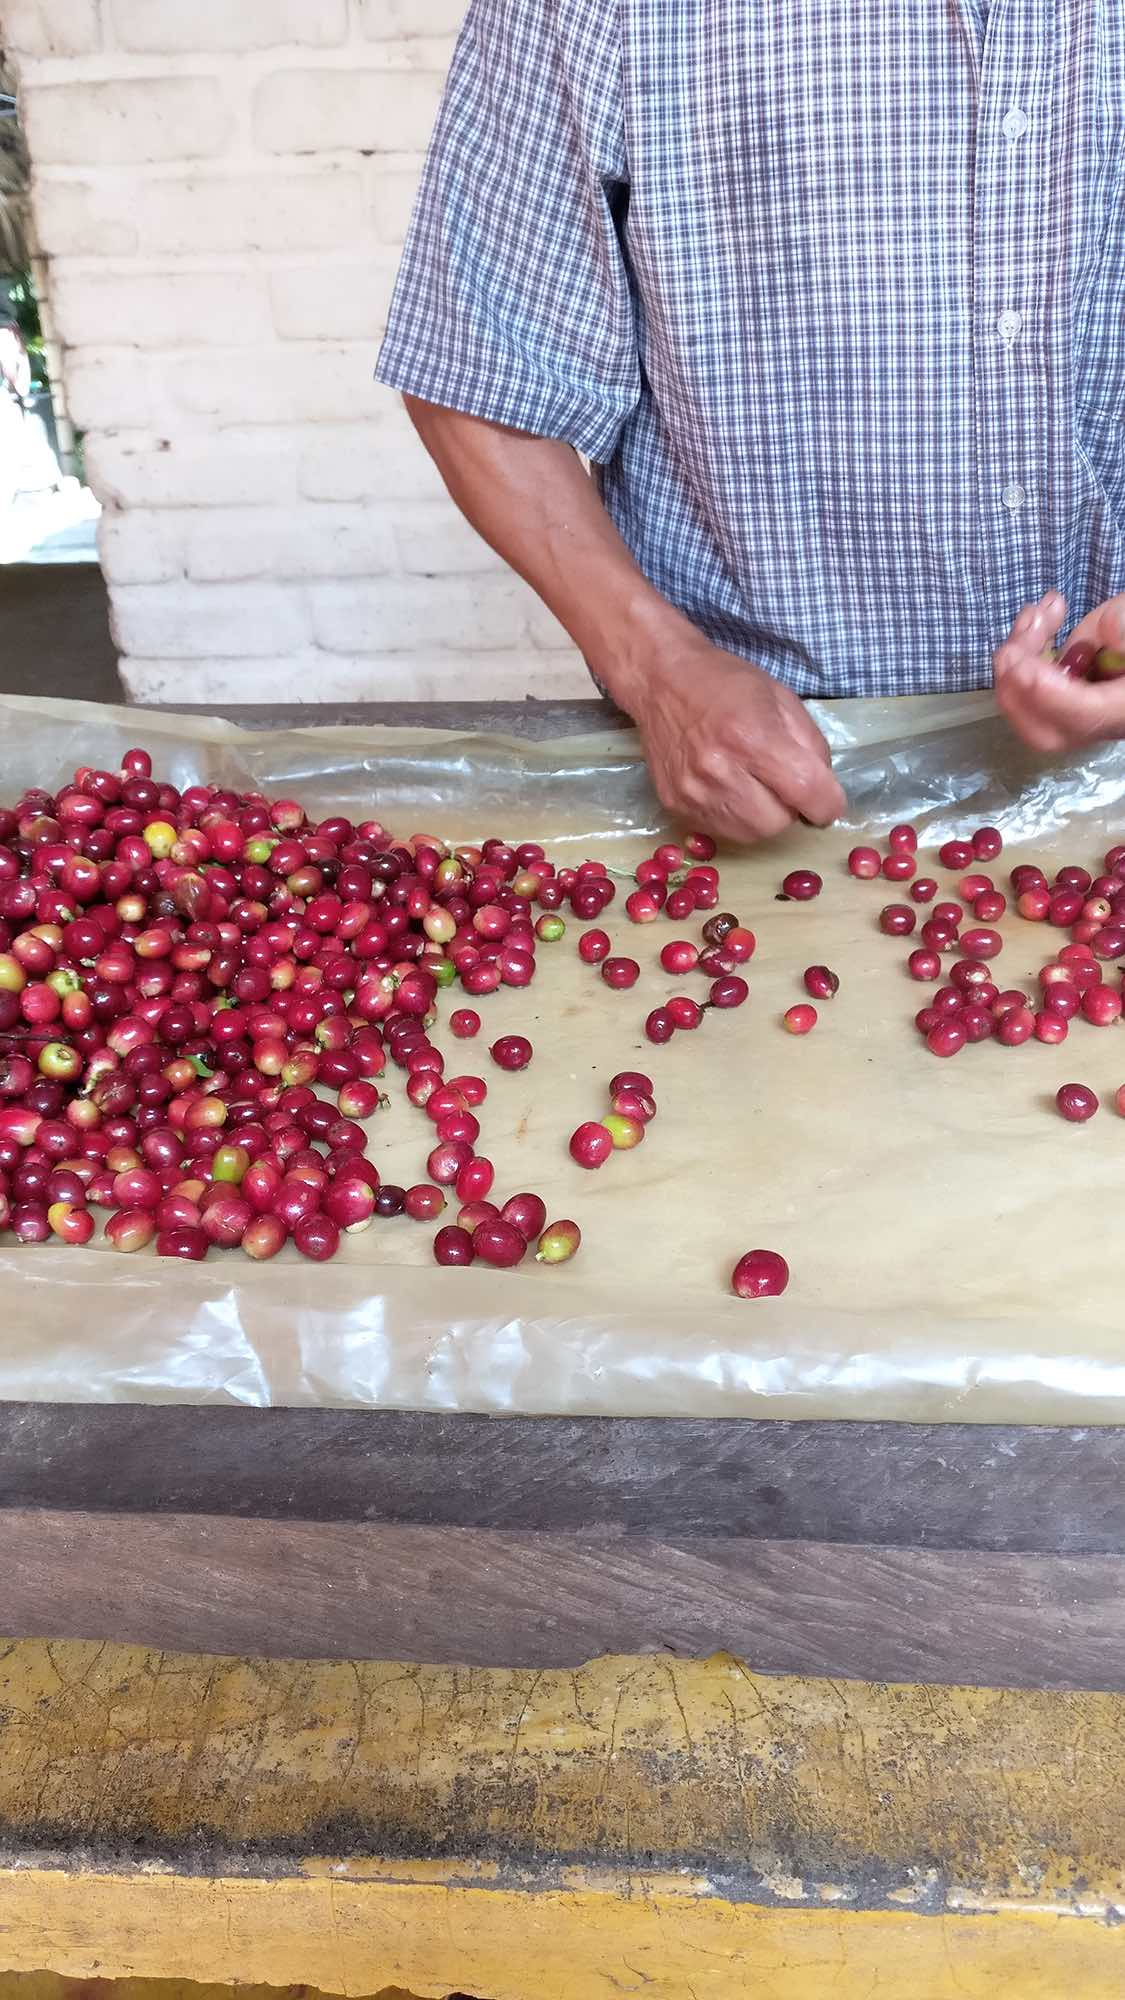 Processing coffee beans by hand